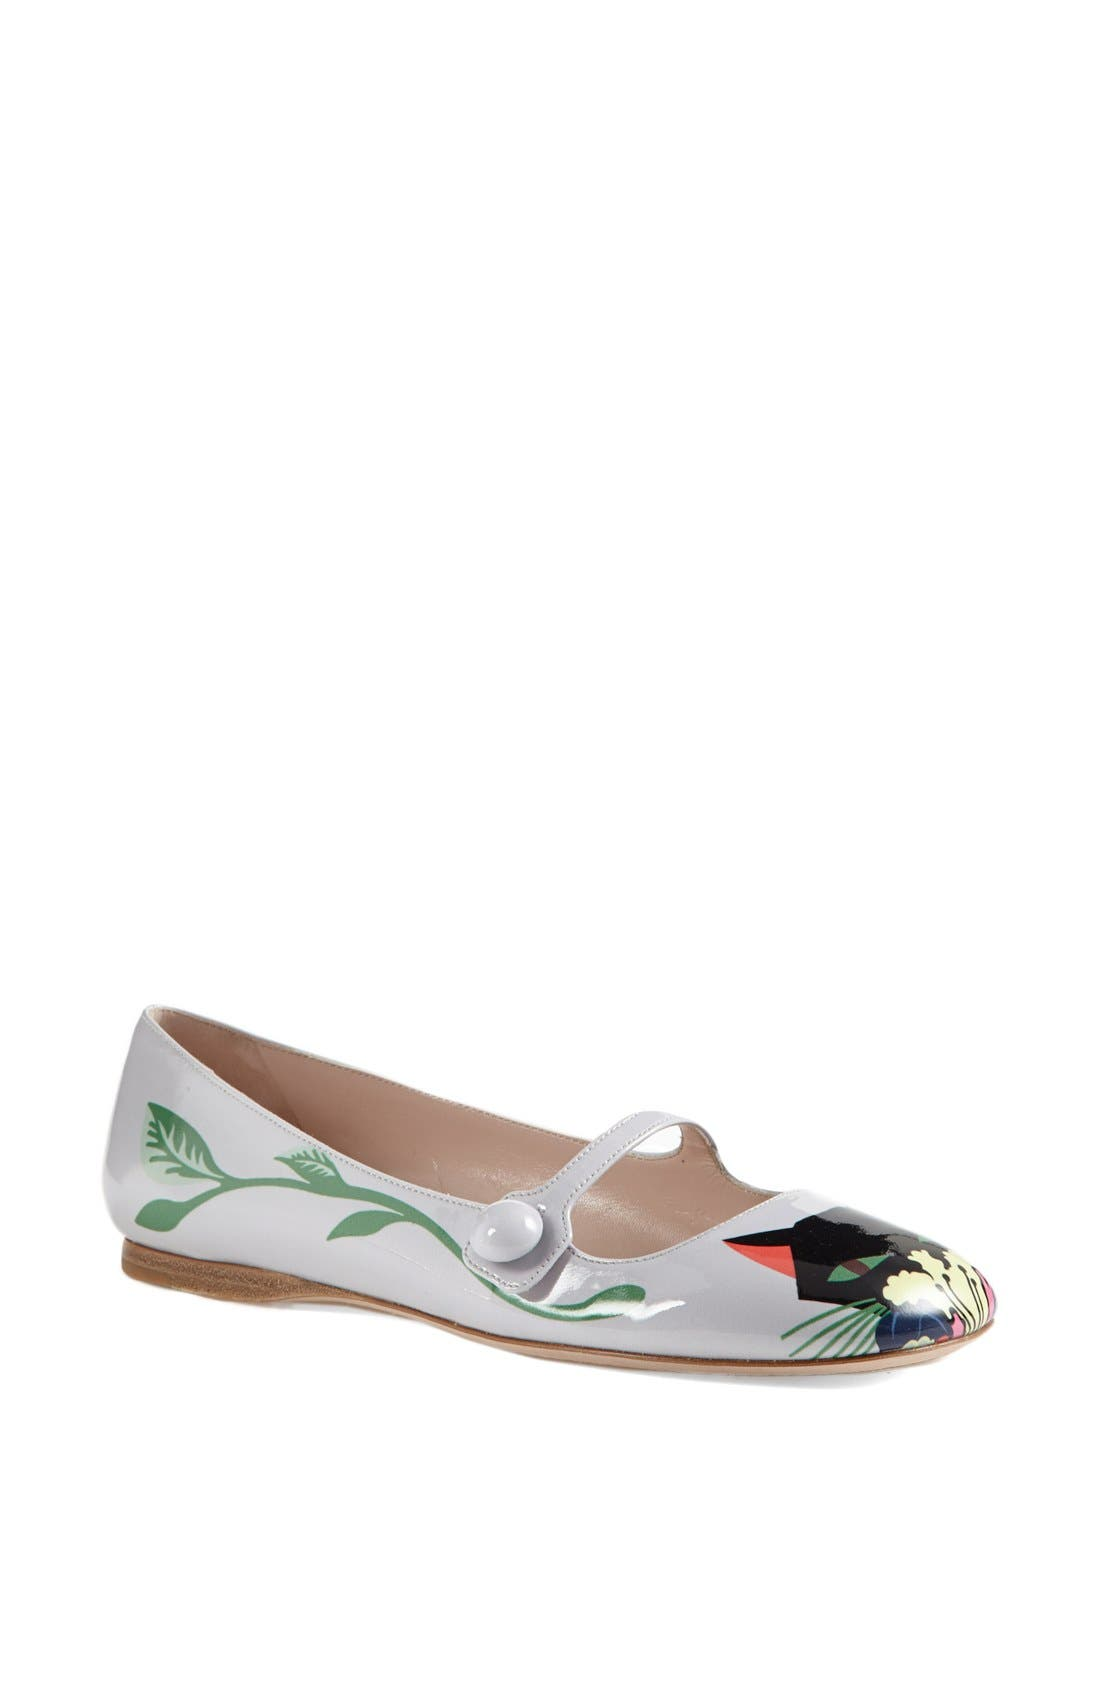 Main Image - Miu Miu 'Cat' Mary Jane Flat